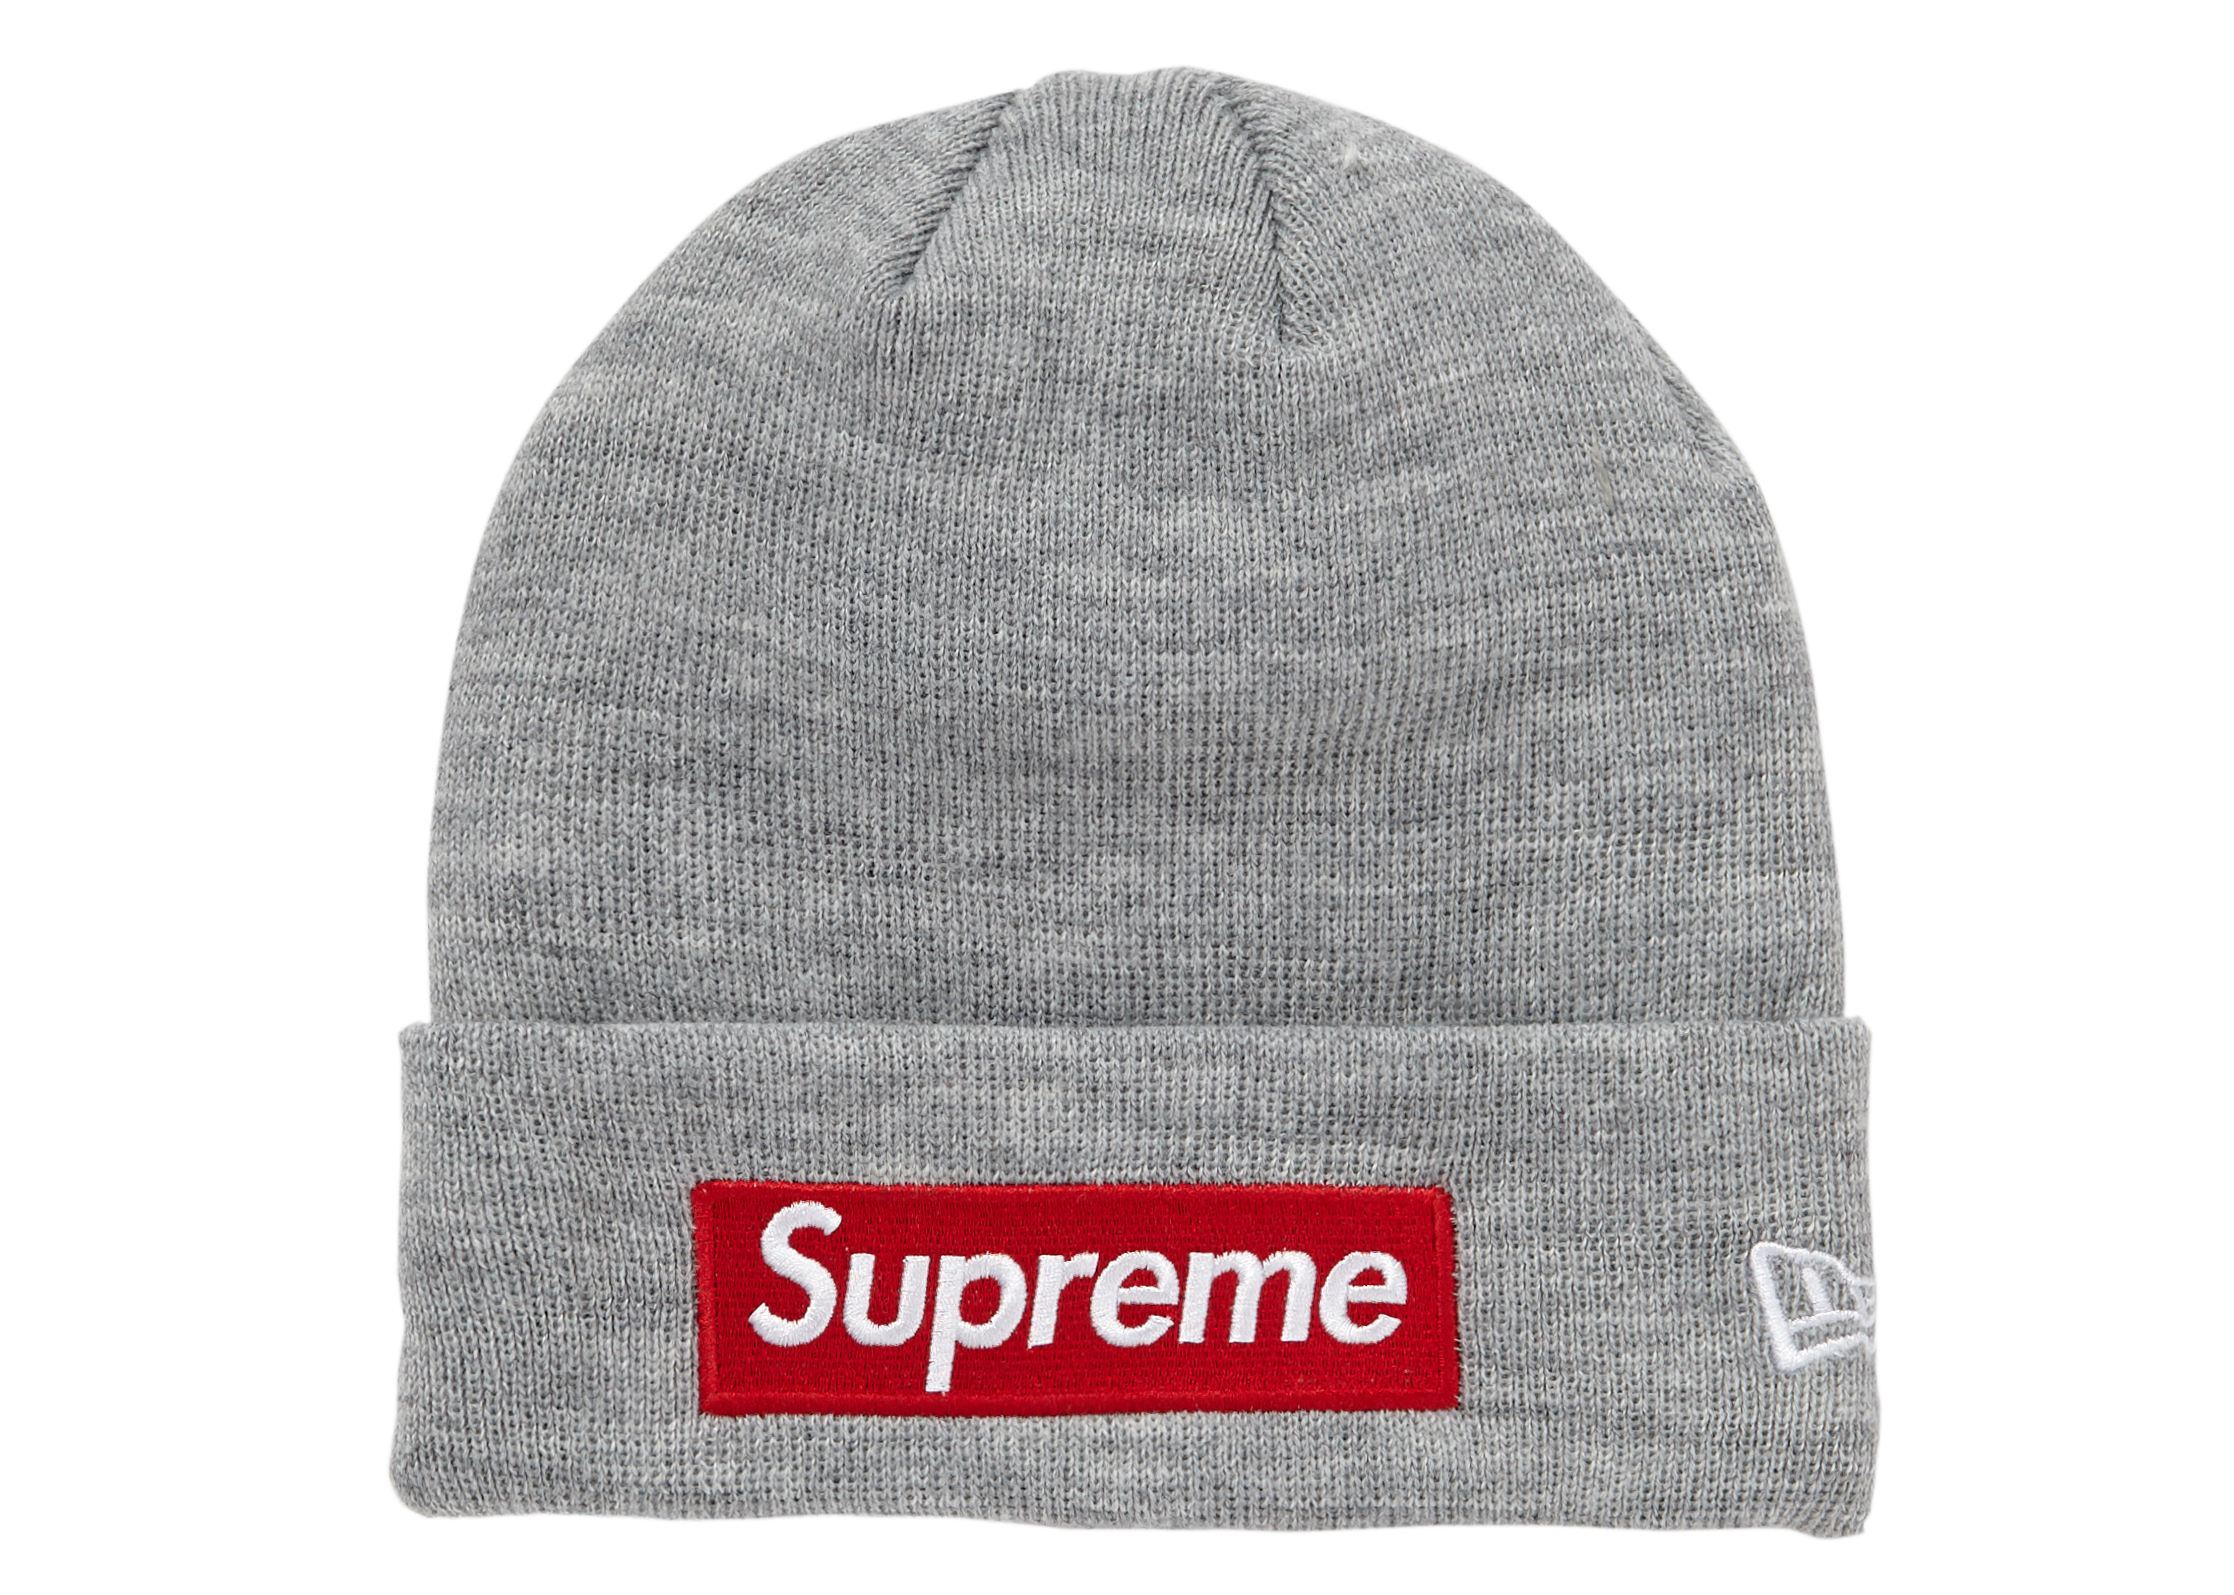 NWT Supreme x New Era Box Logo Red Beanie Hat F//W 15